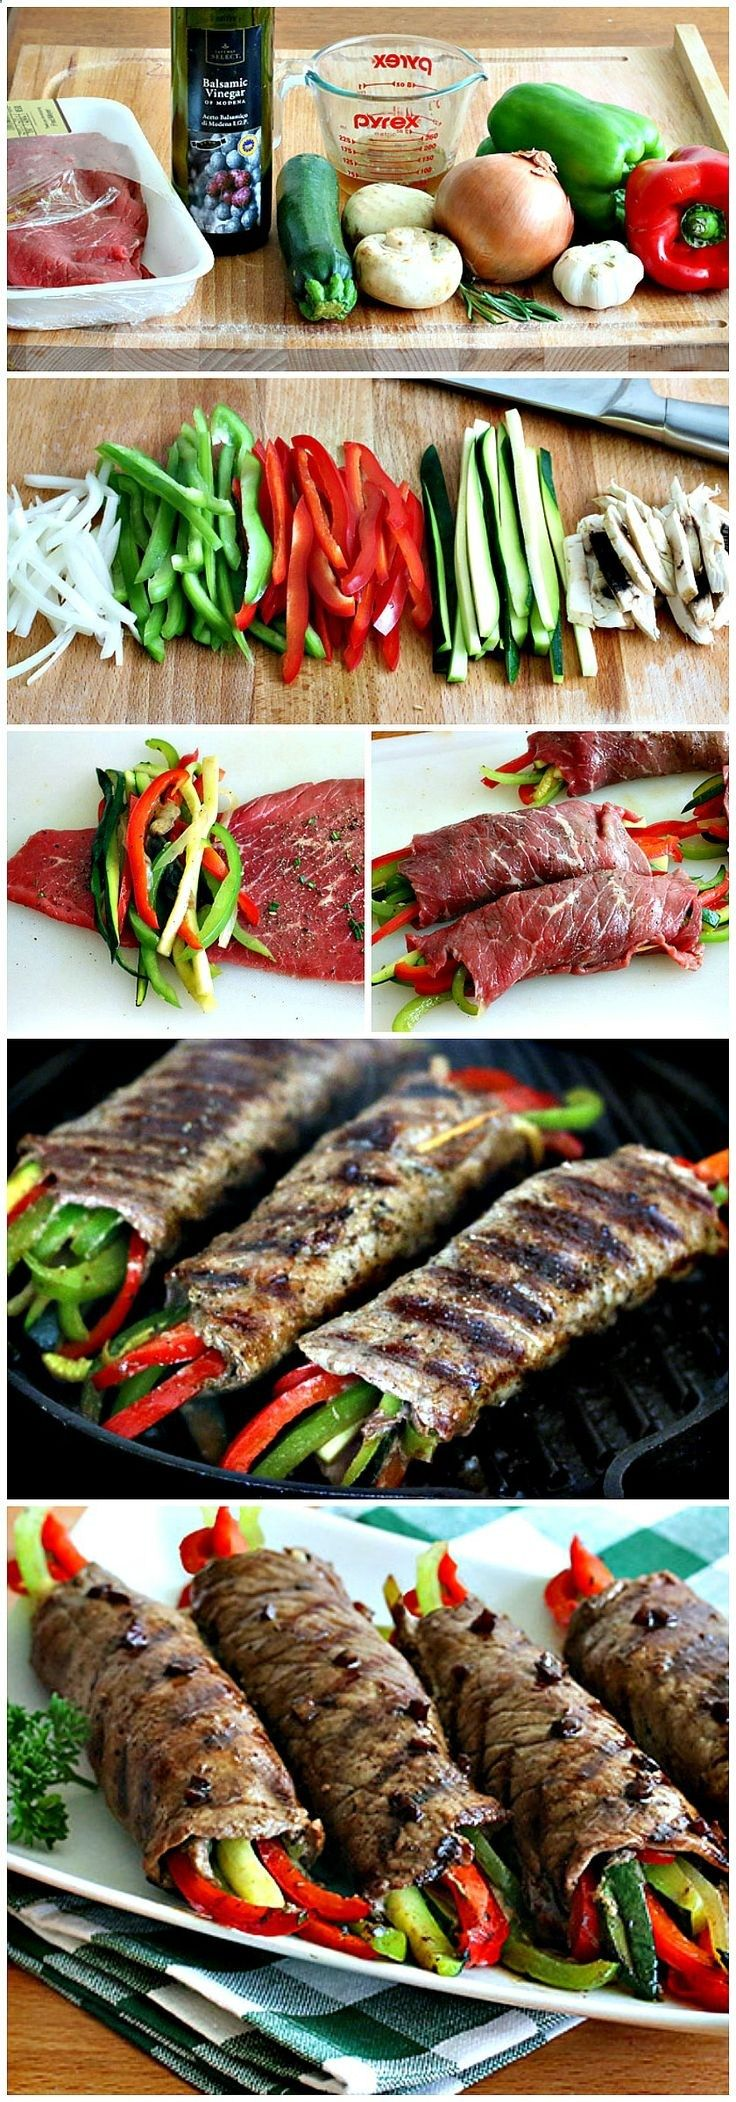 Paleo Collection! Easy Recipes for everyone!